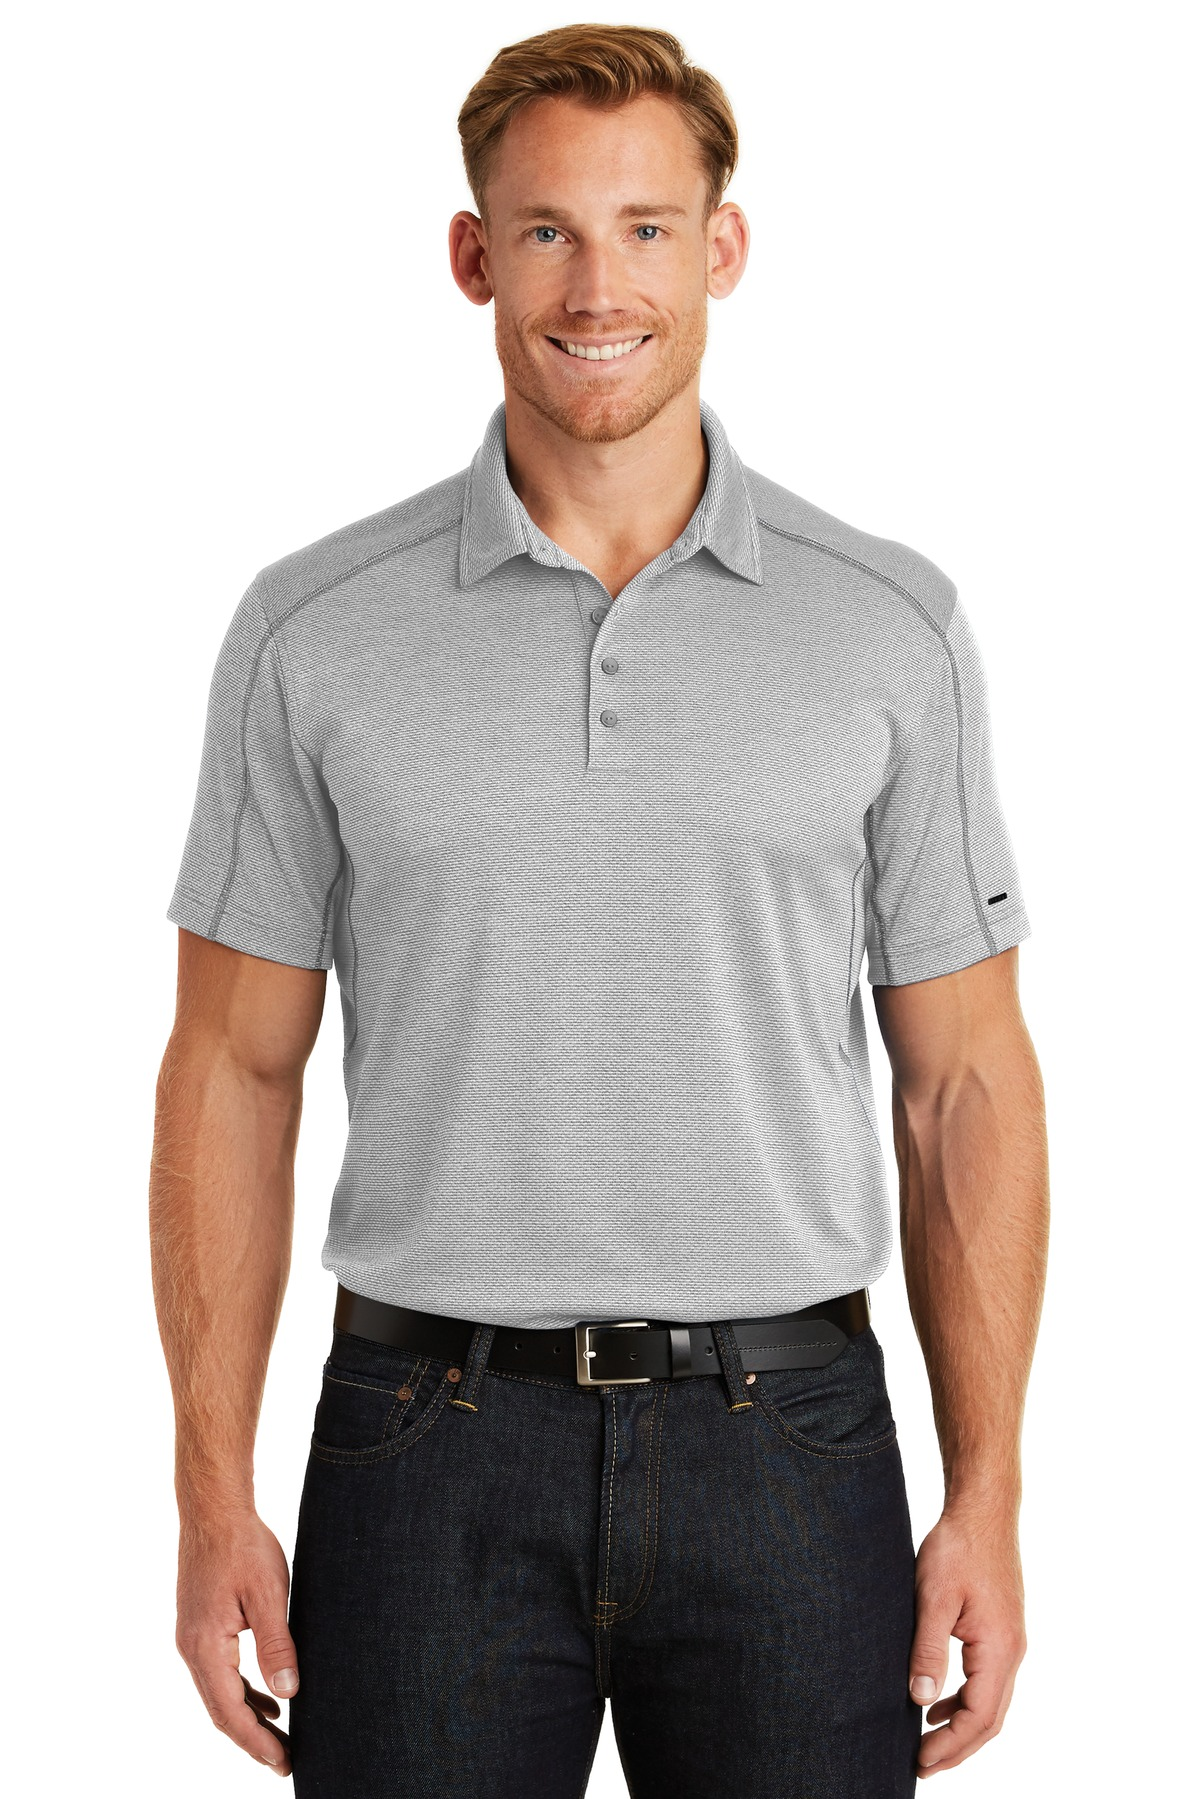 OGIO  ®  Orbit Polo. OG133 - Rogue Grey/ White